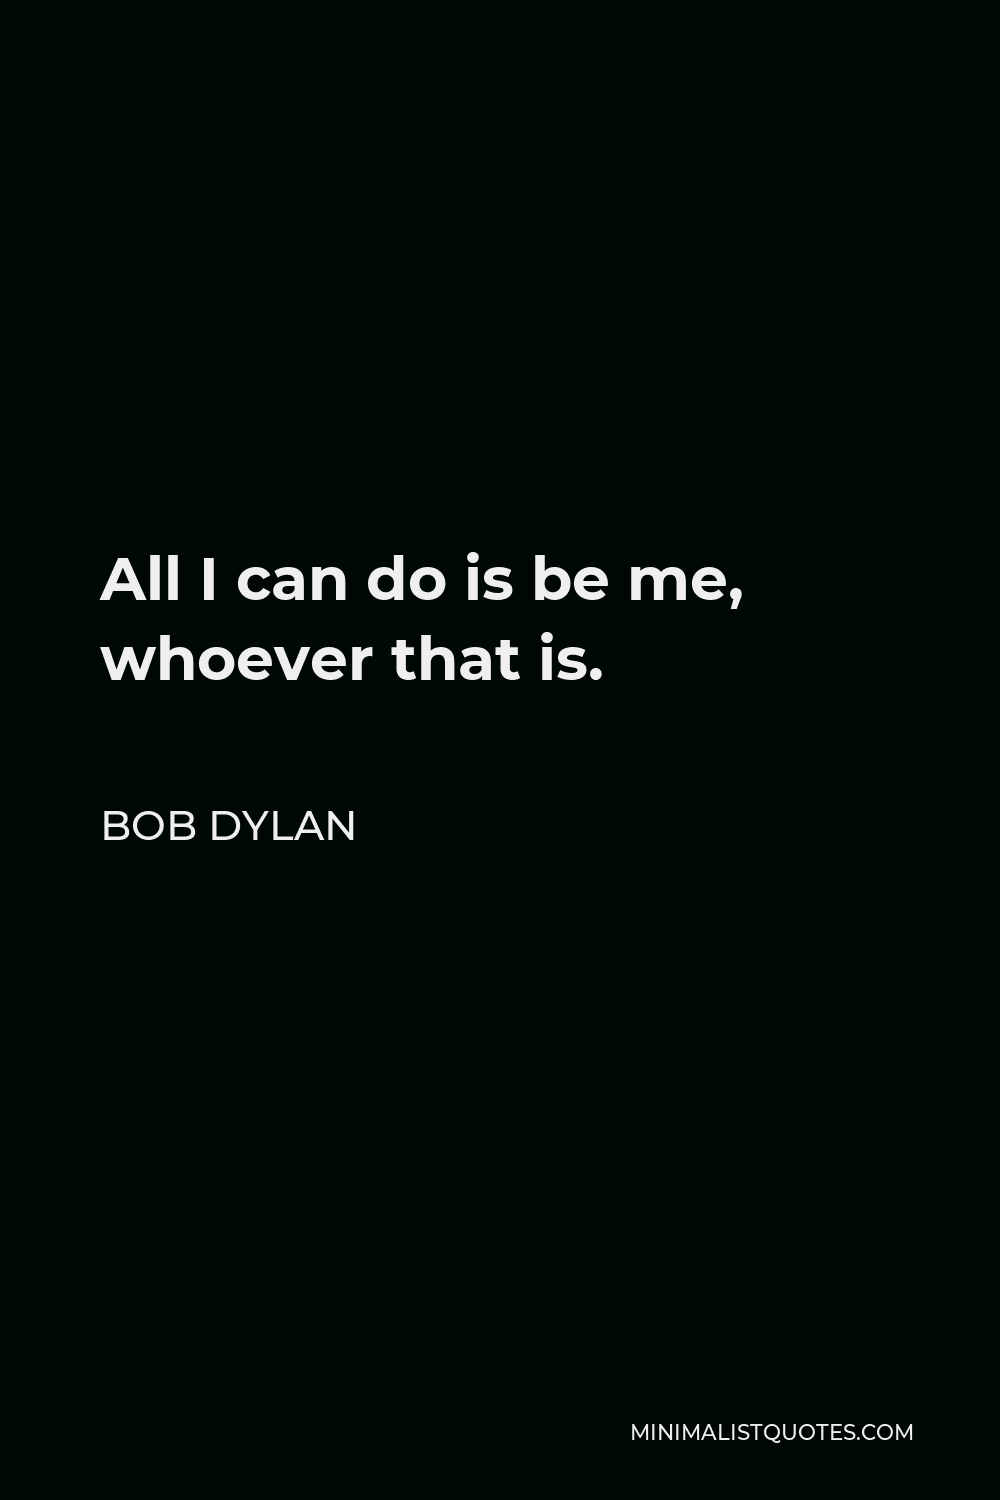 Bob Dylan Quote - All I can do is be me, whoever that is.